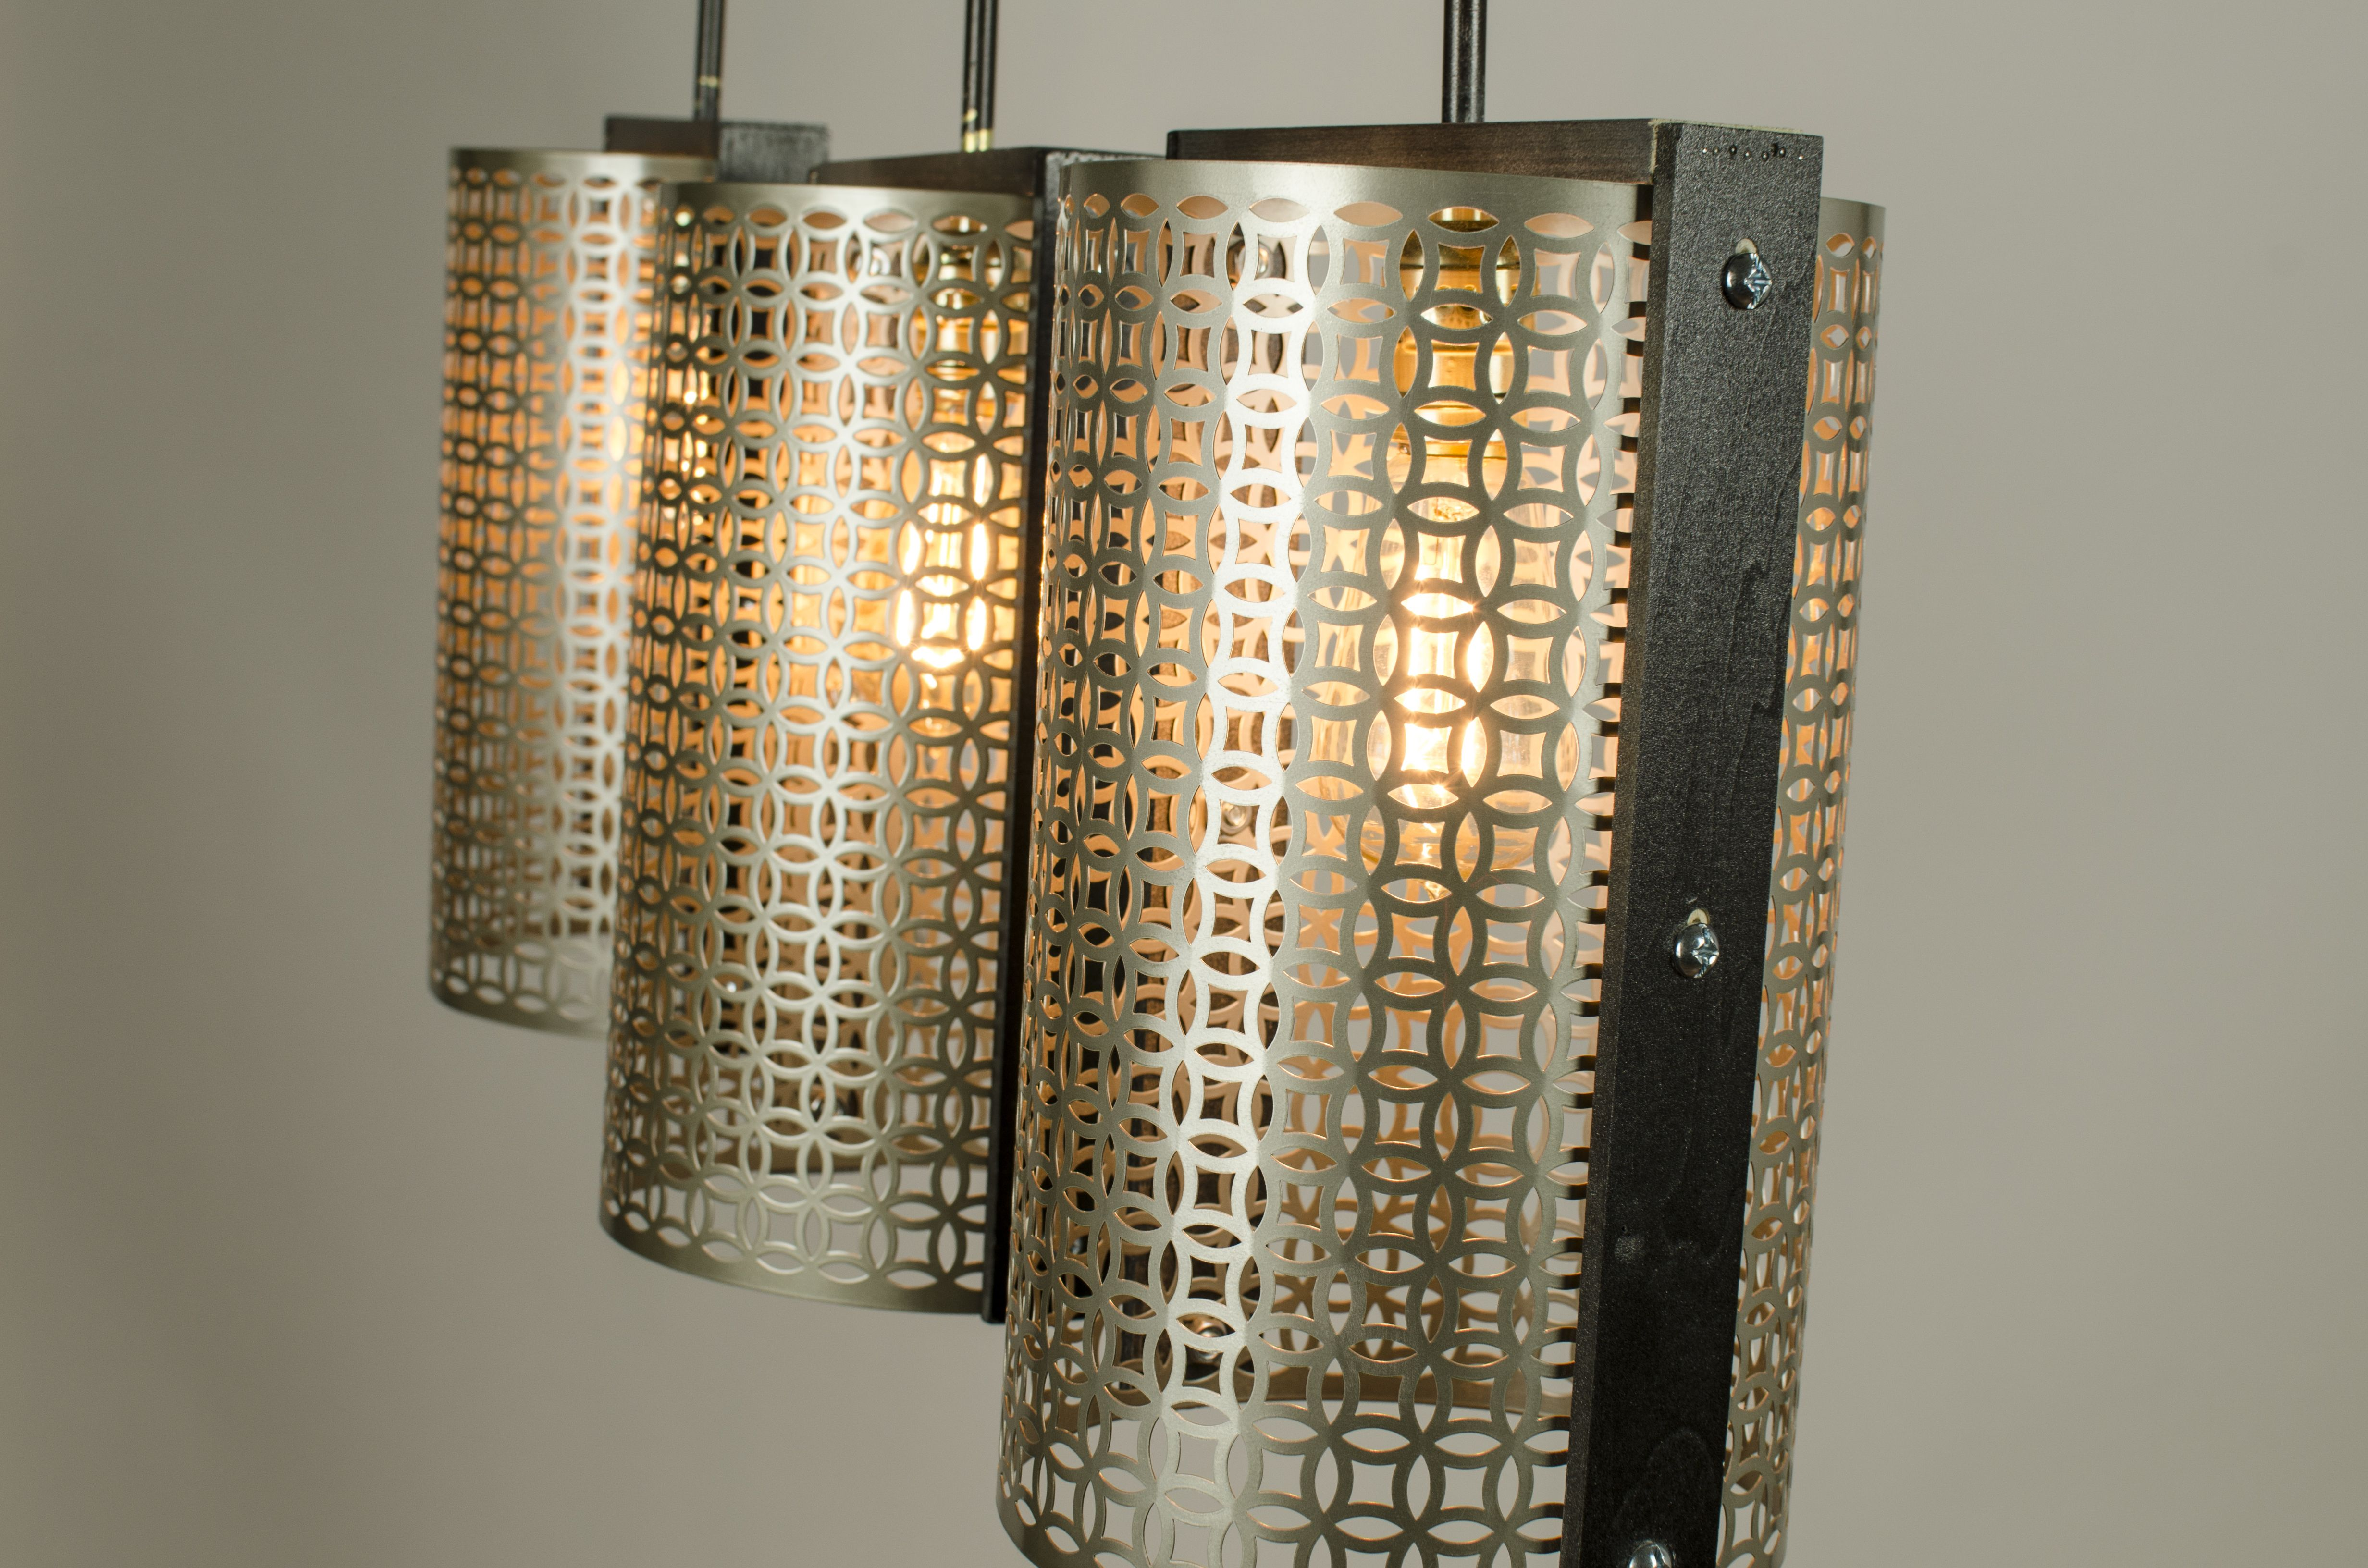 Buy hand made industrial chandelier rustic lighting edison bulbs custom made industrial chandelier rustic lighting edison bulbs arubaitofo Image collections